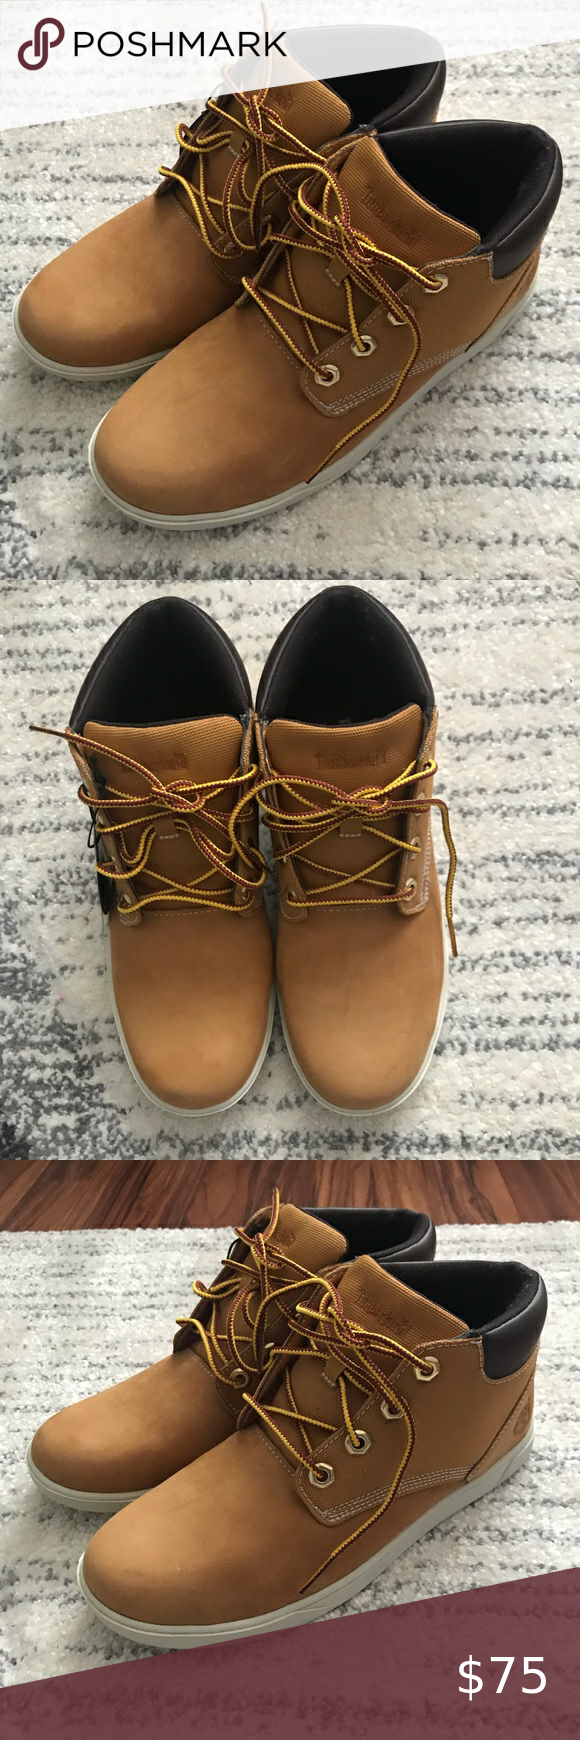 Timberland boots low top ortholite 6